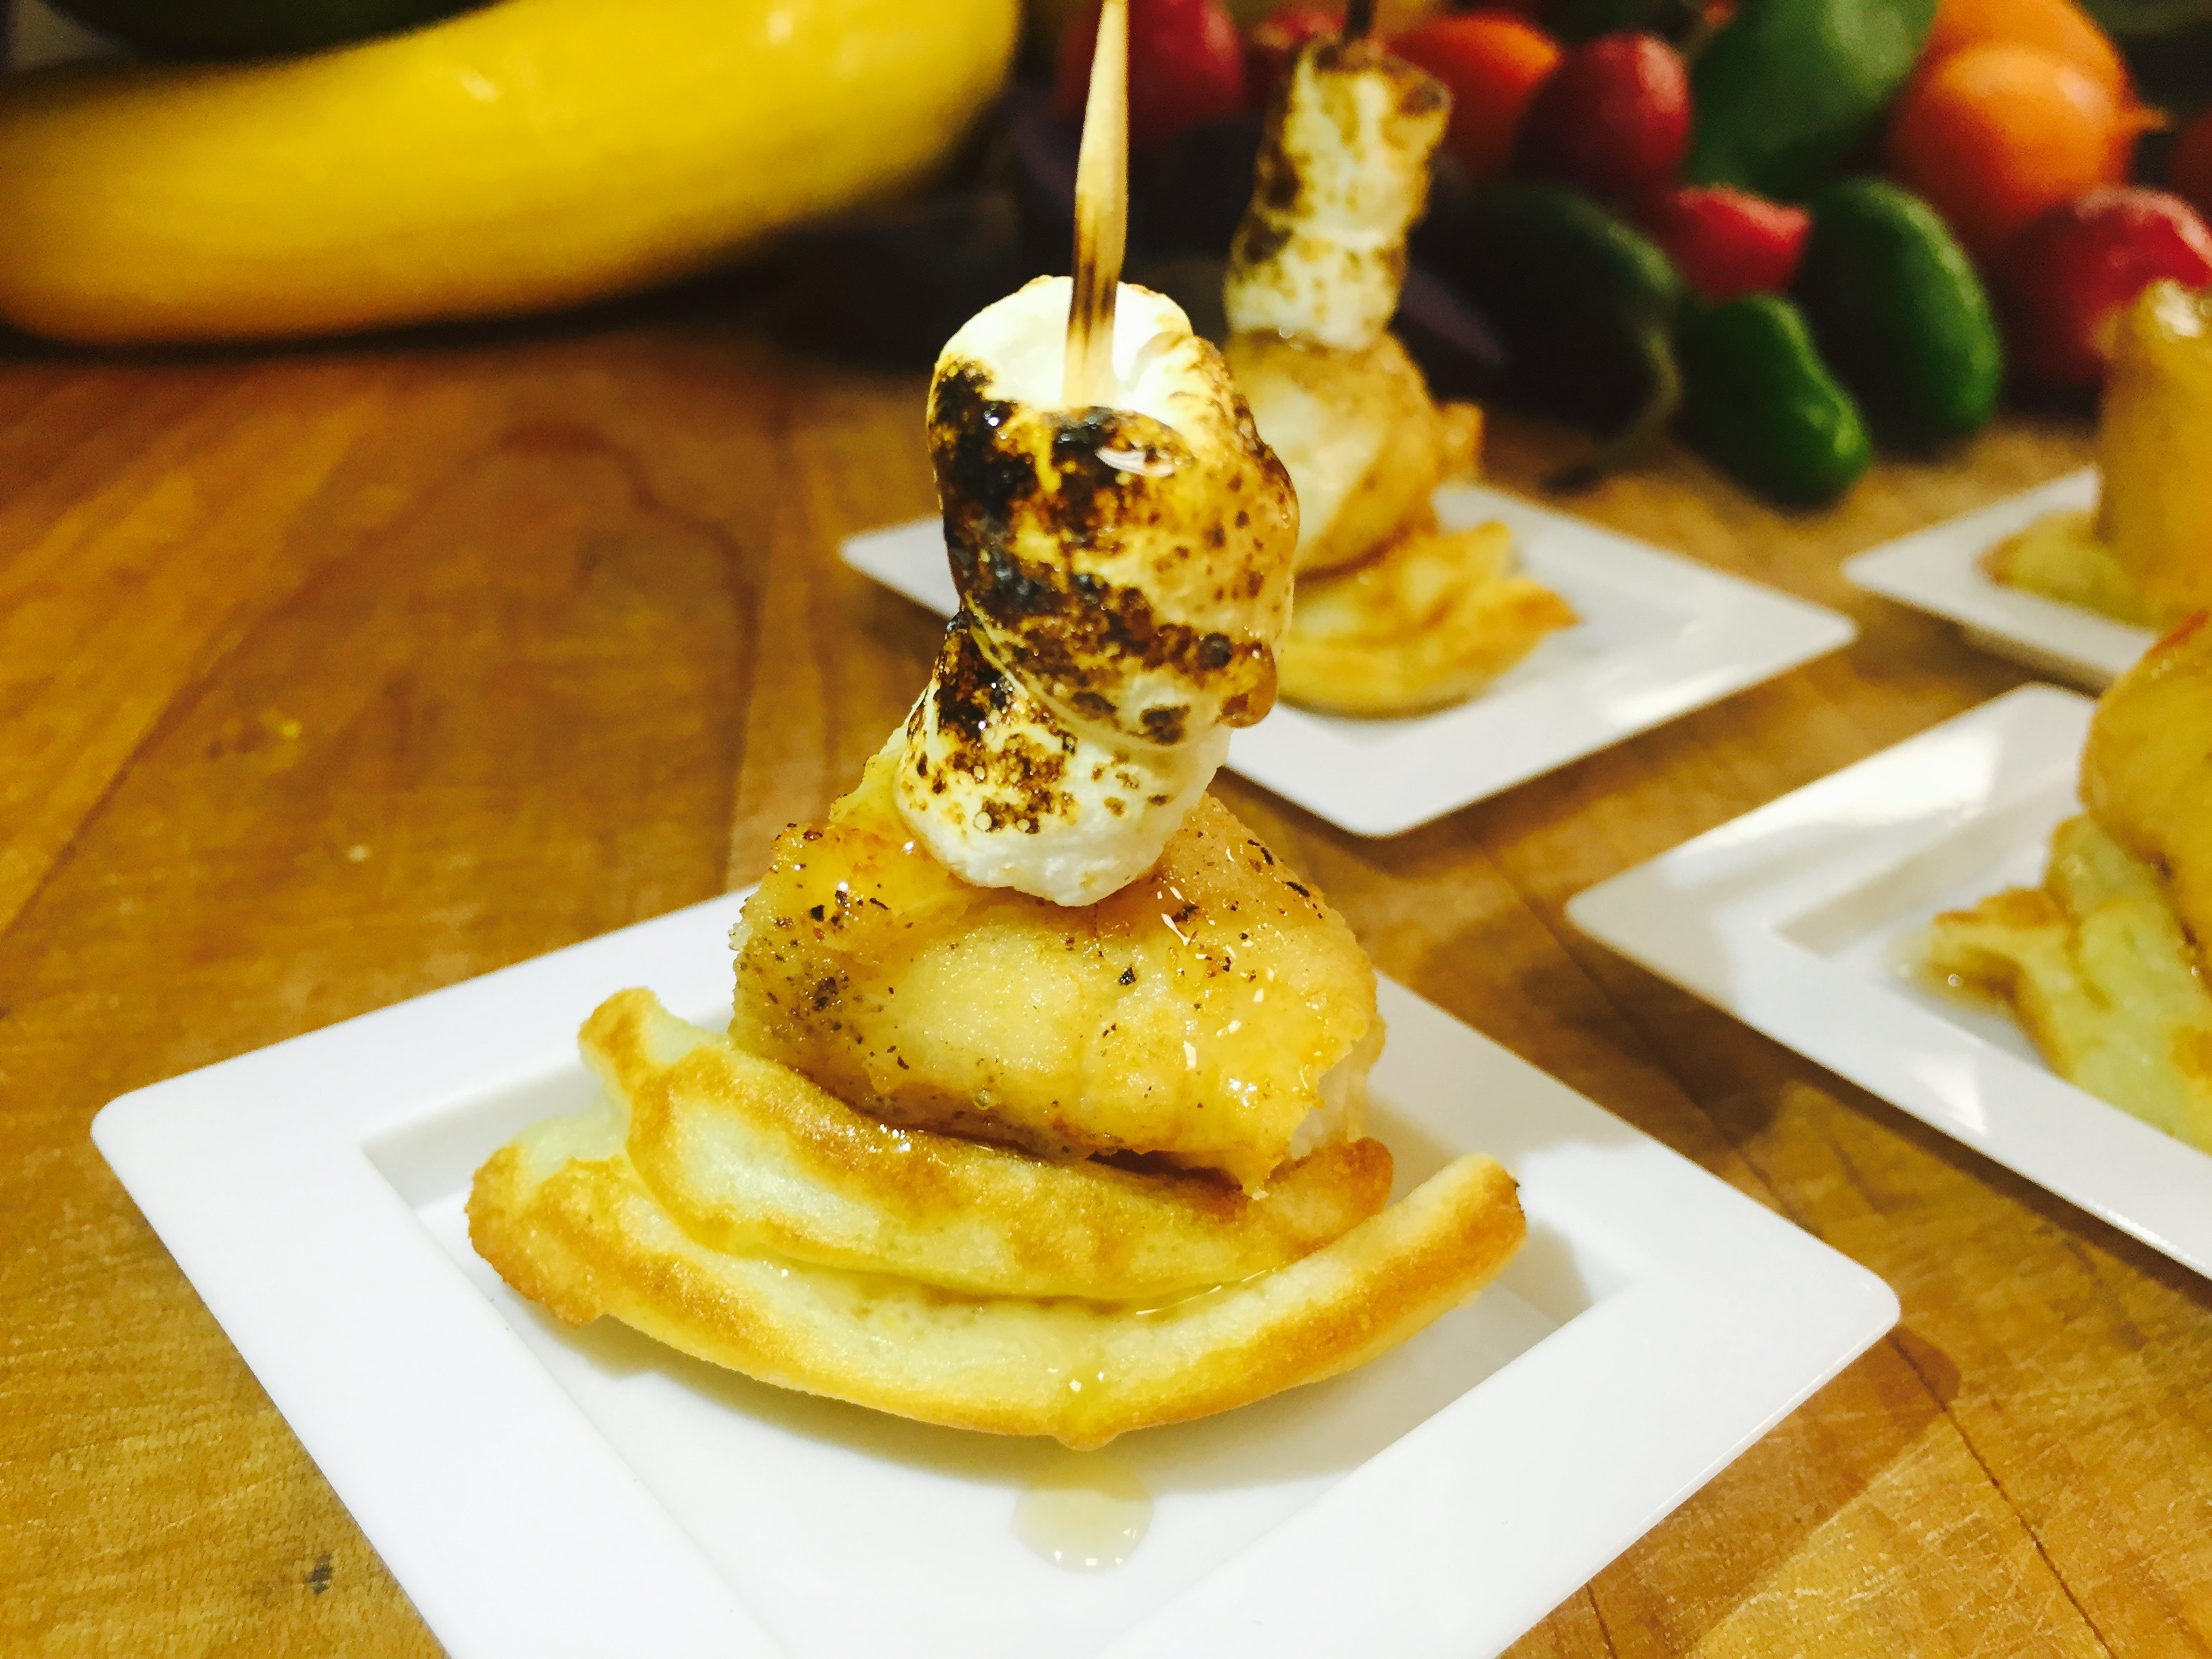 Southern Chicken and Waffles Topped with Fire Toasted Marshmallow and Drizzled with Maple Syrup